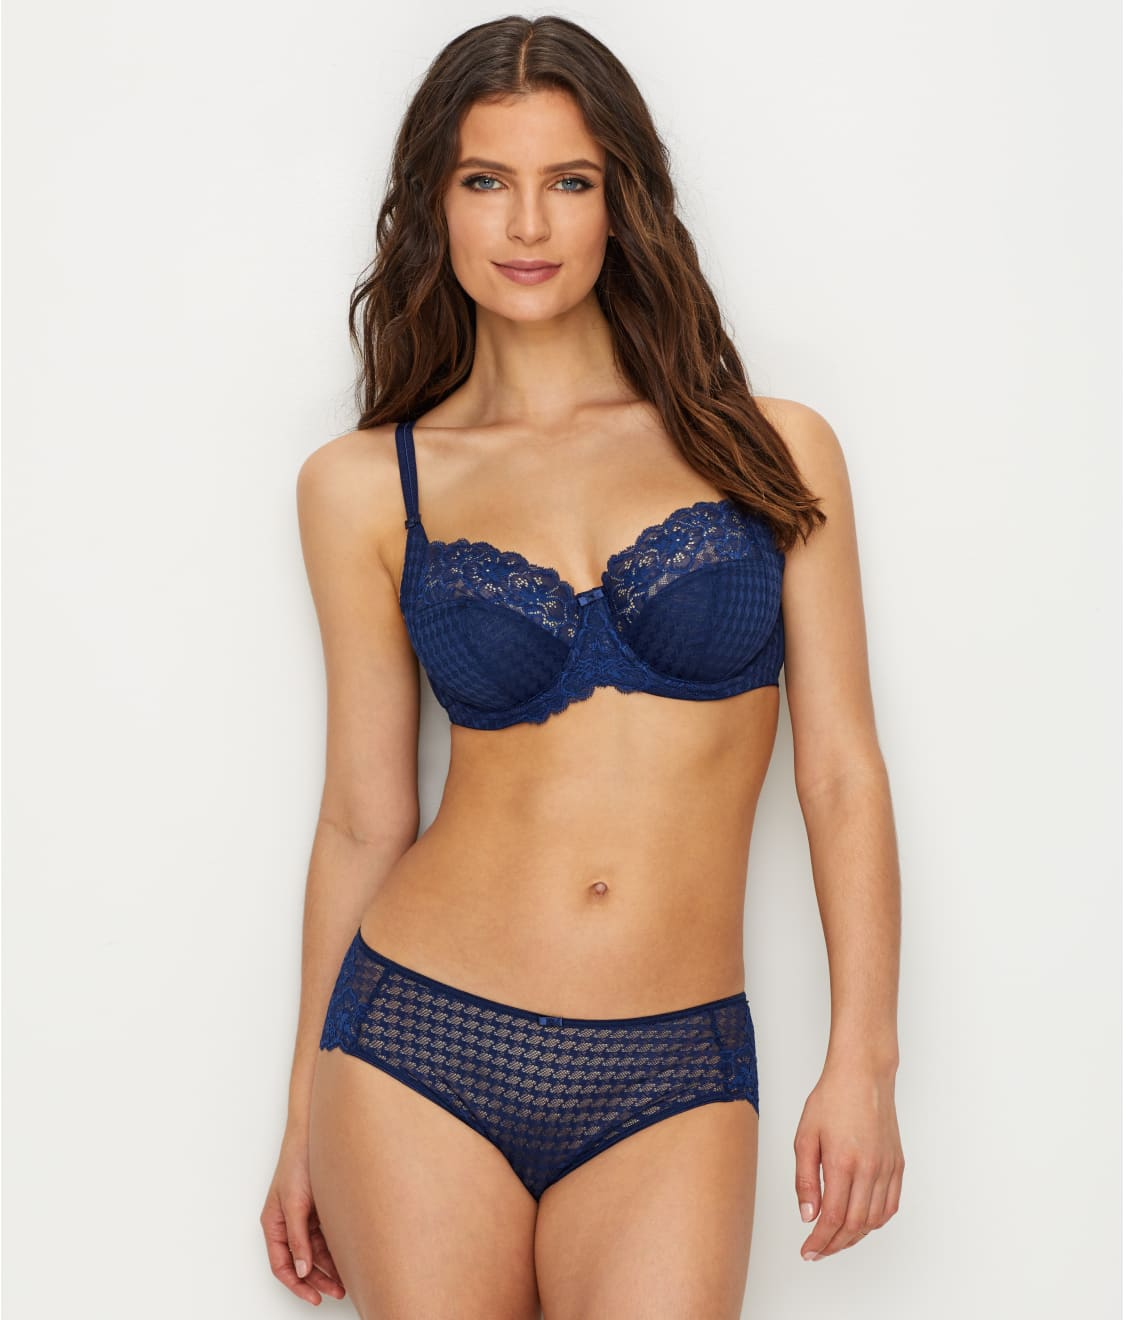 5c6b991e7b See Envy Balconette Bra in Navy